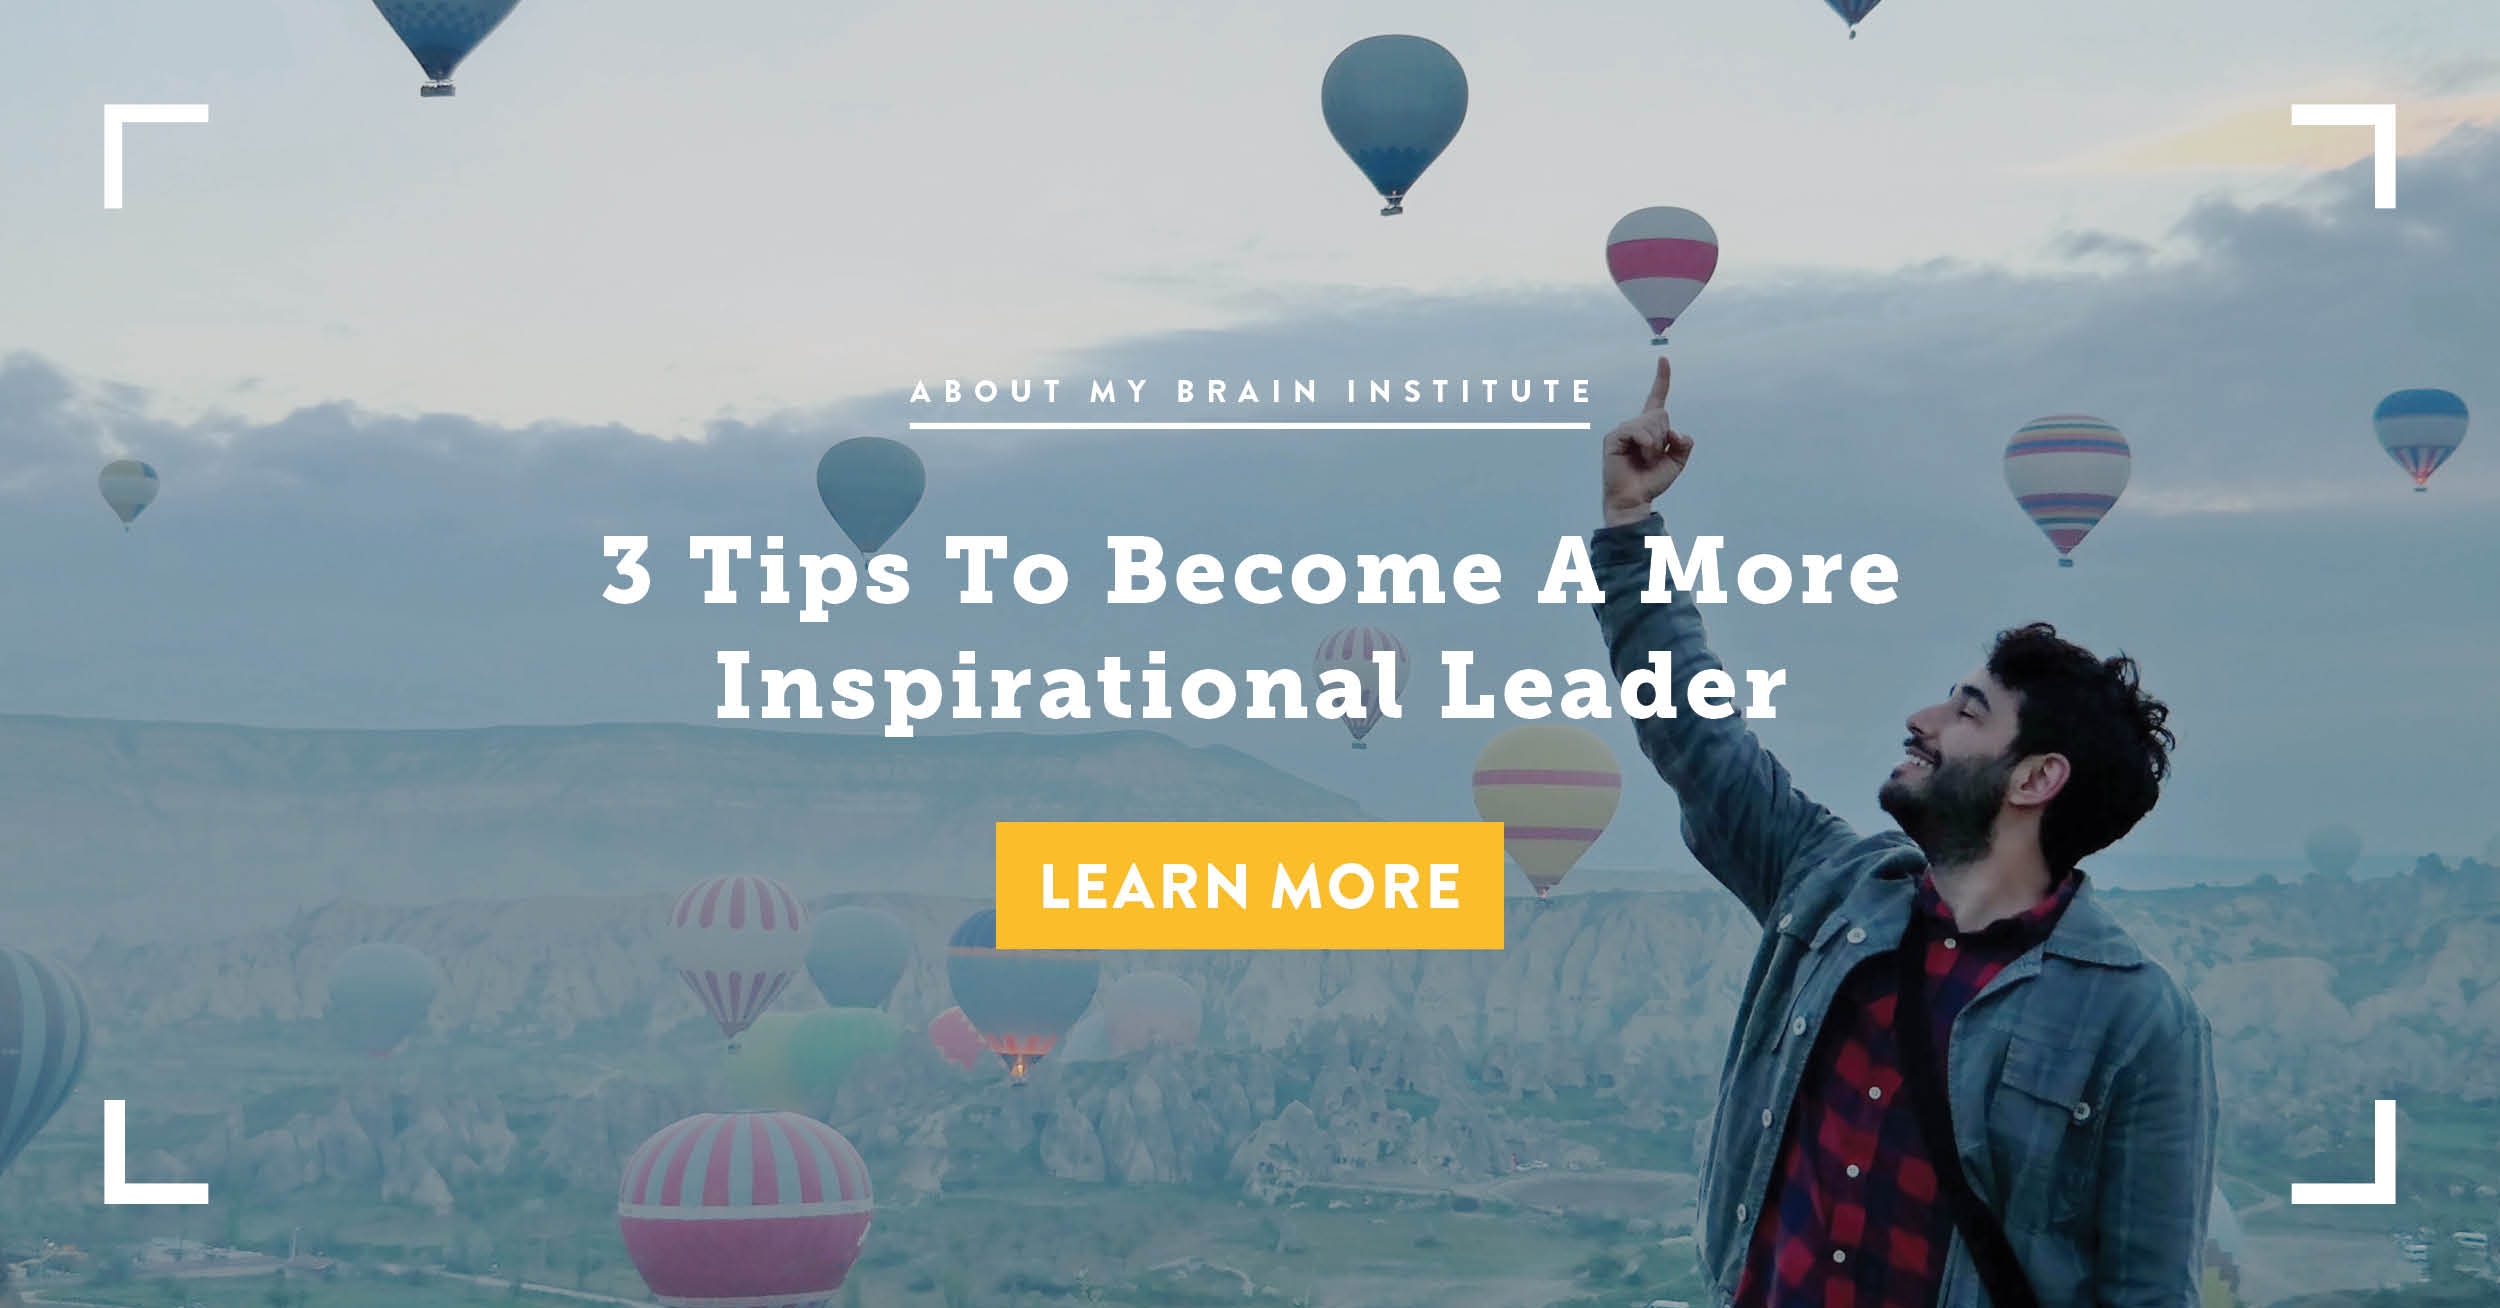 3 Tips To Become A More Inspirational Leader